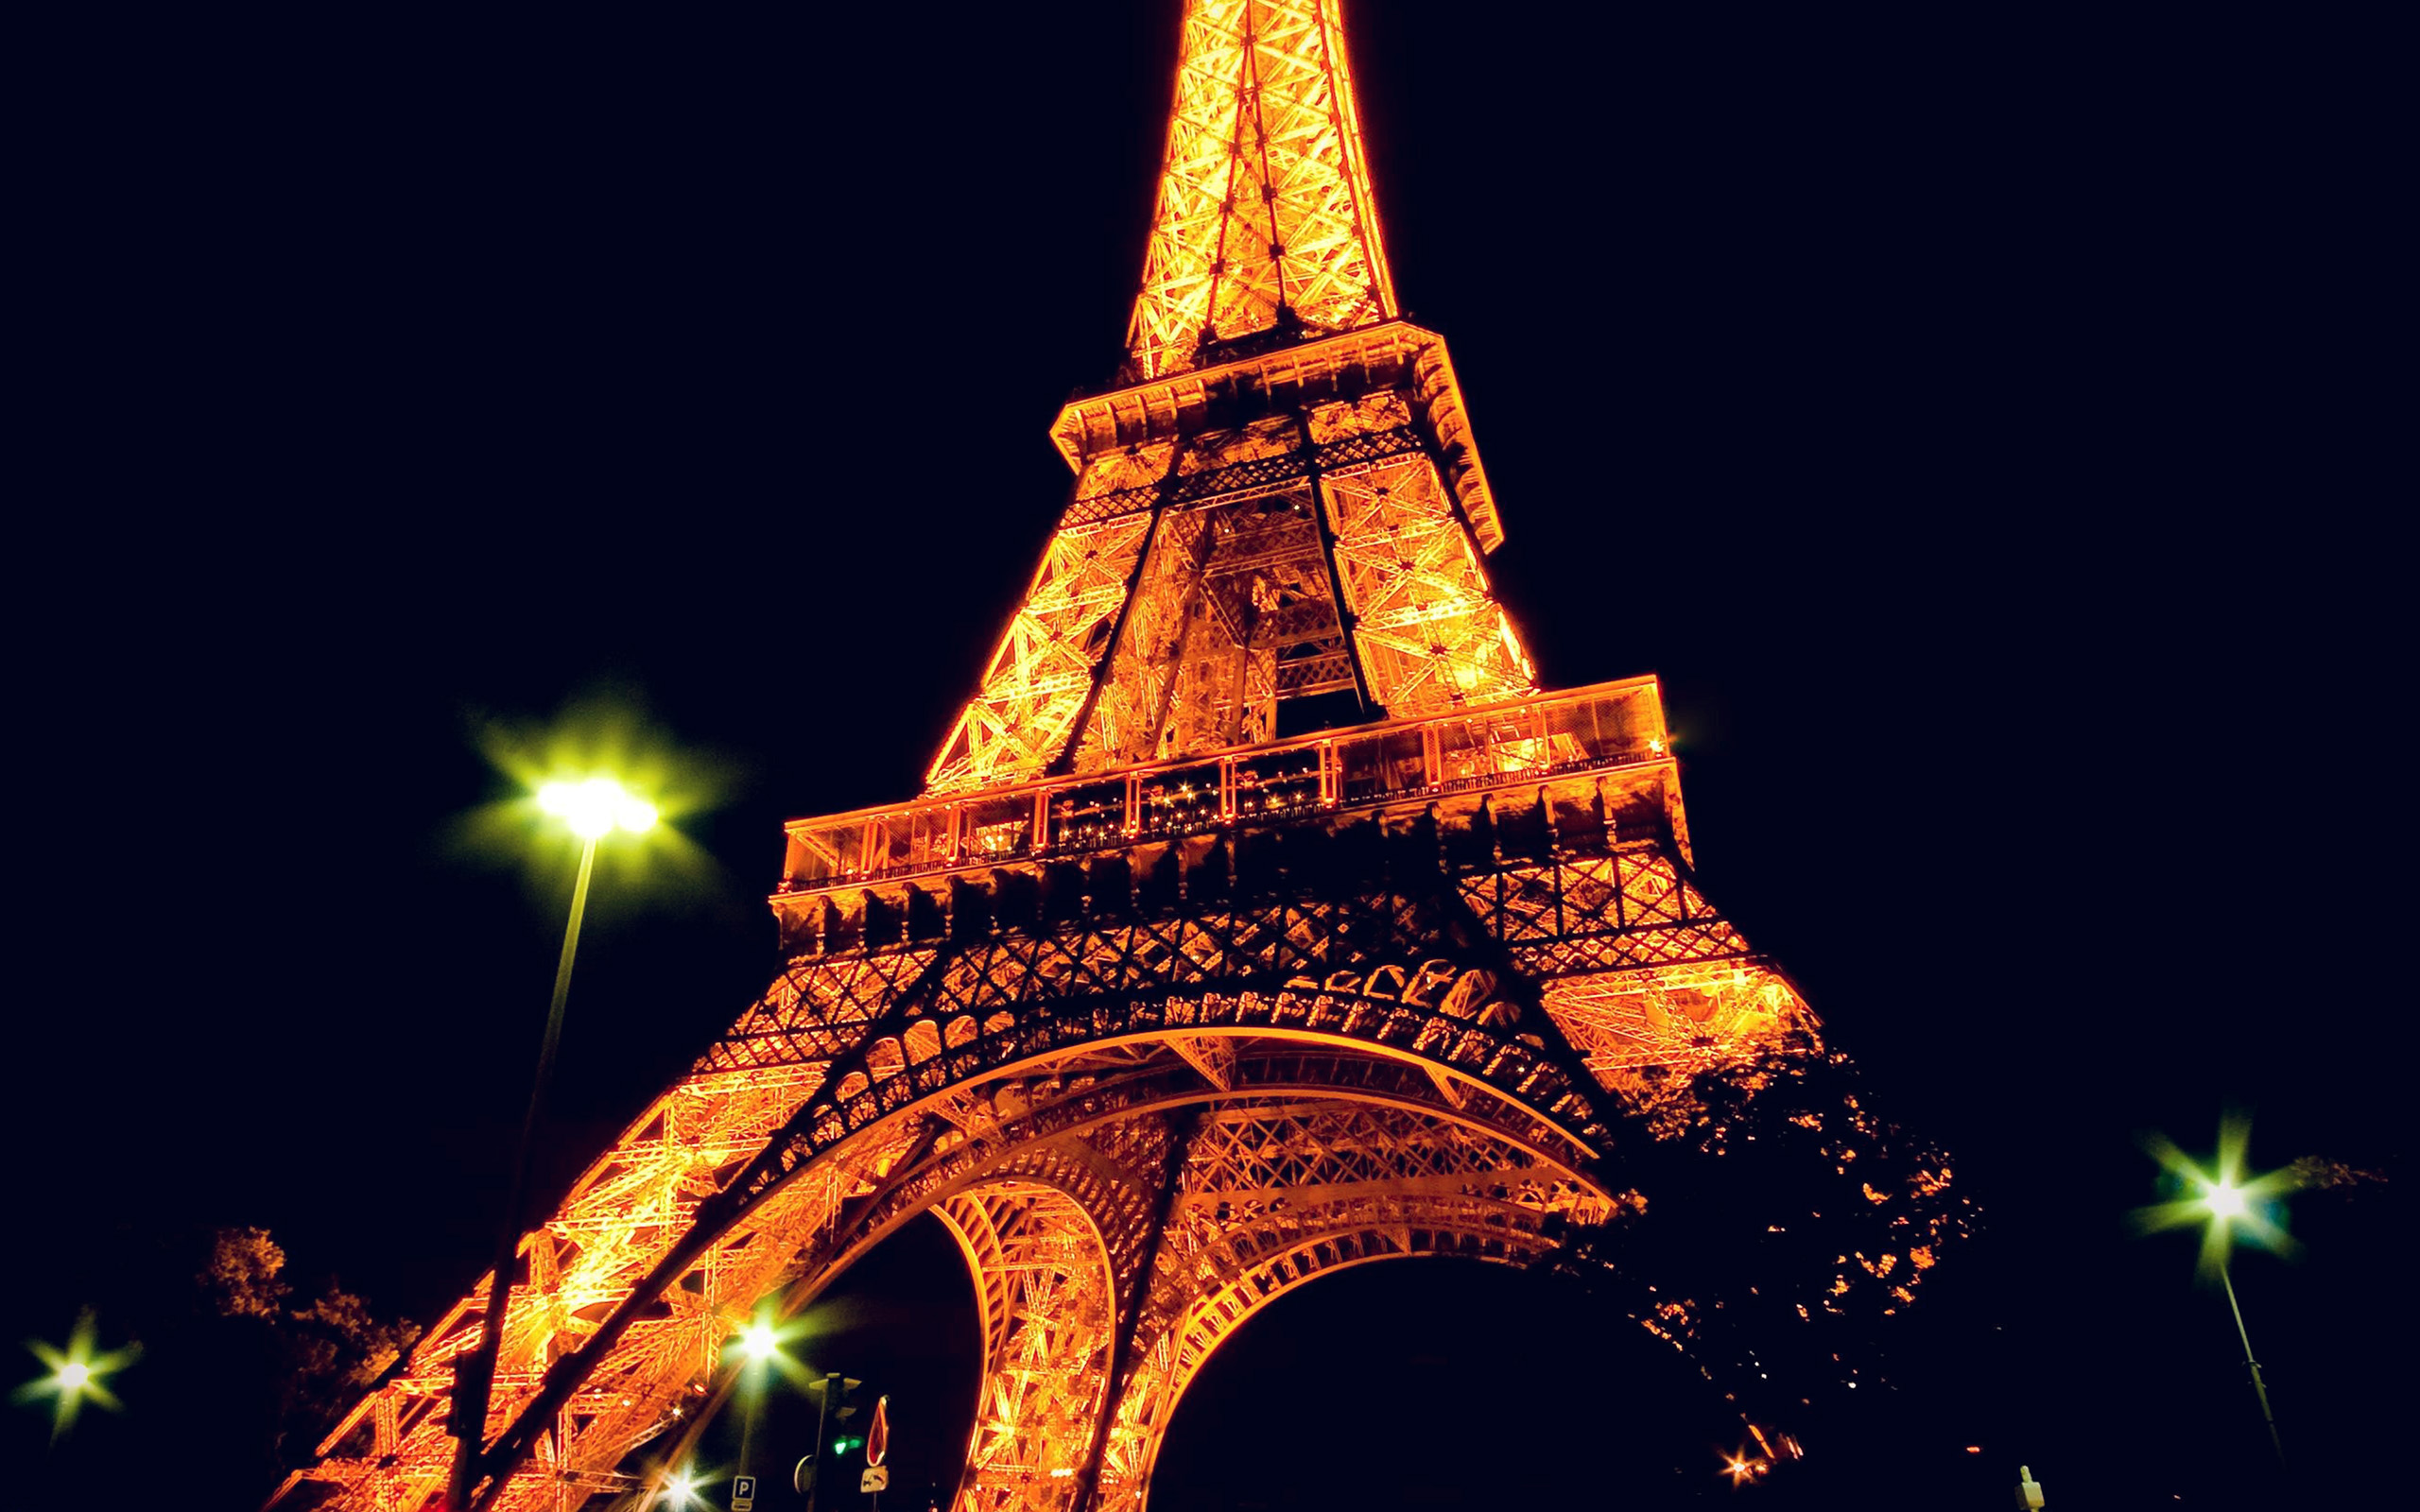 bc23-eiffel-tower-paris-night-art-illustration-wallpaper